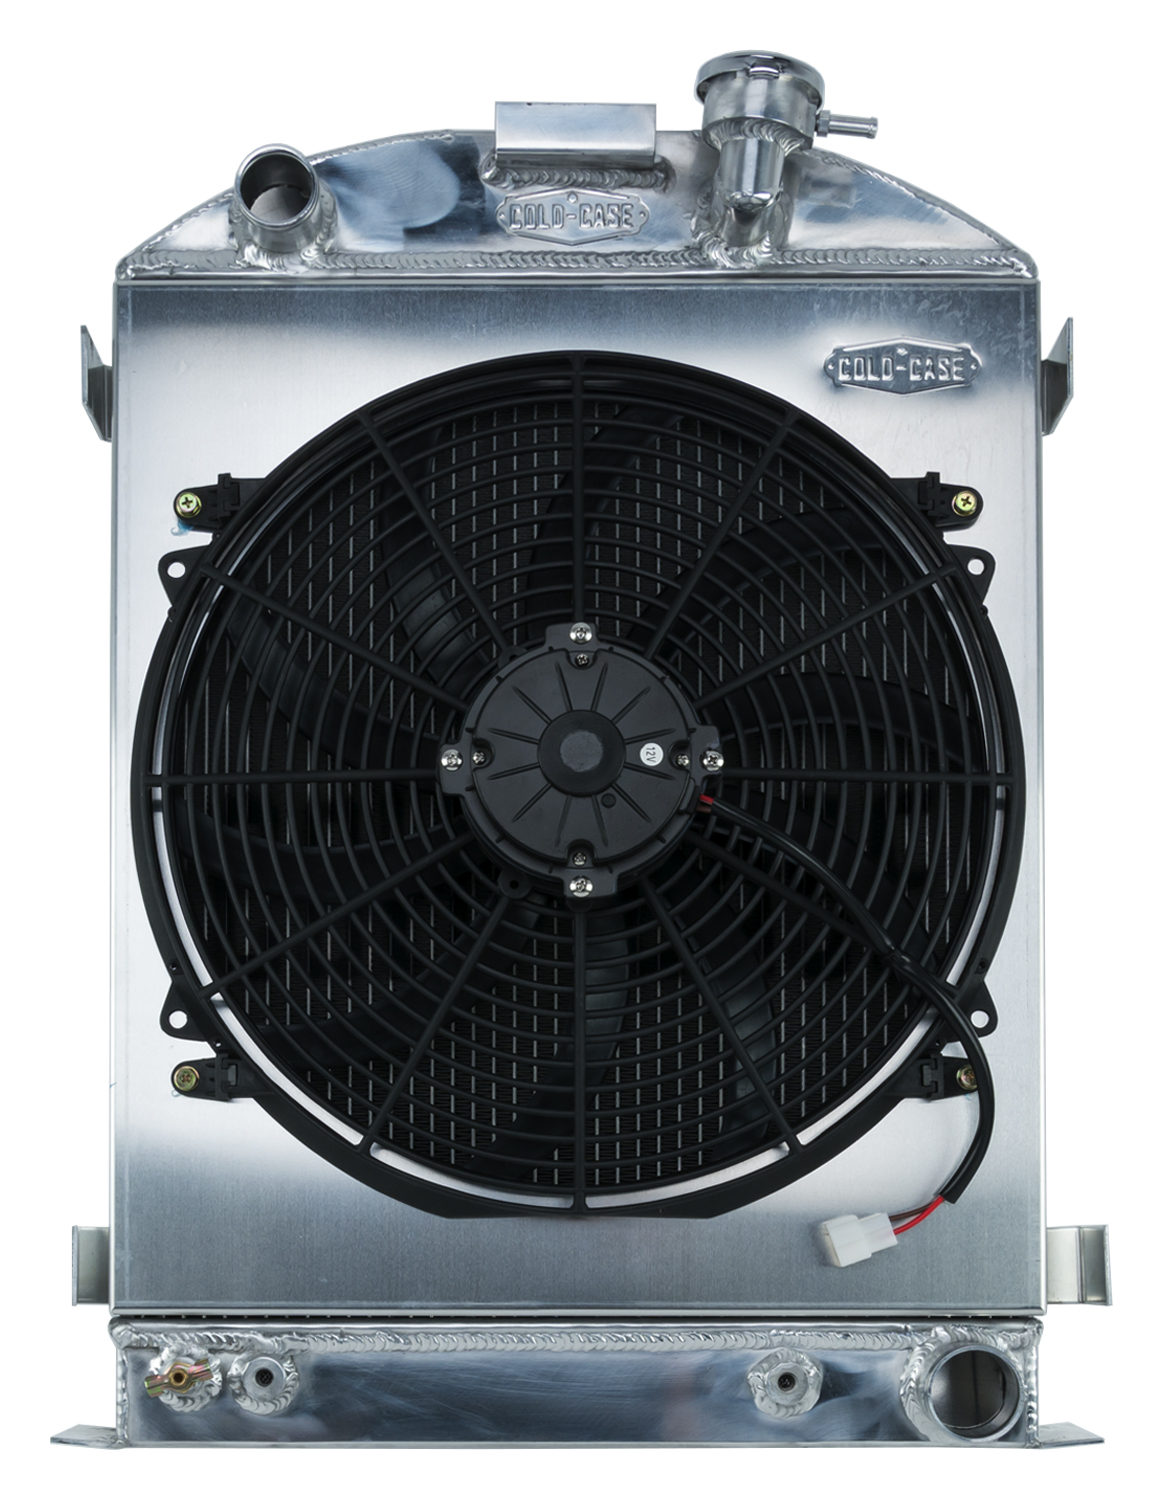 Cold Case 1932 Highboy Chevy Engine 25.5 Inch Aluminum Performance Radiator and 16 Inch Fan Kit